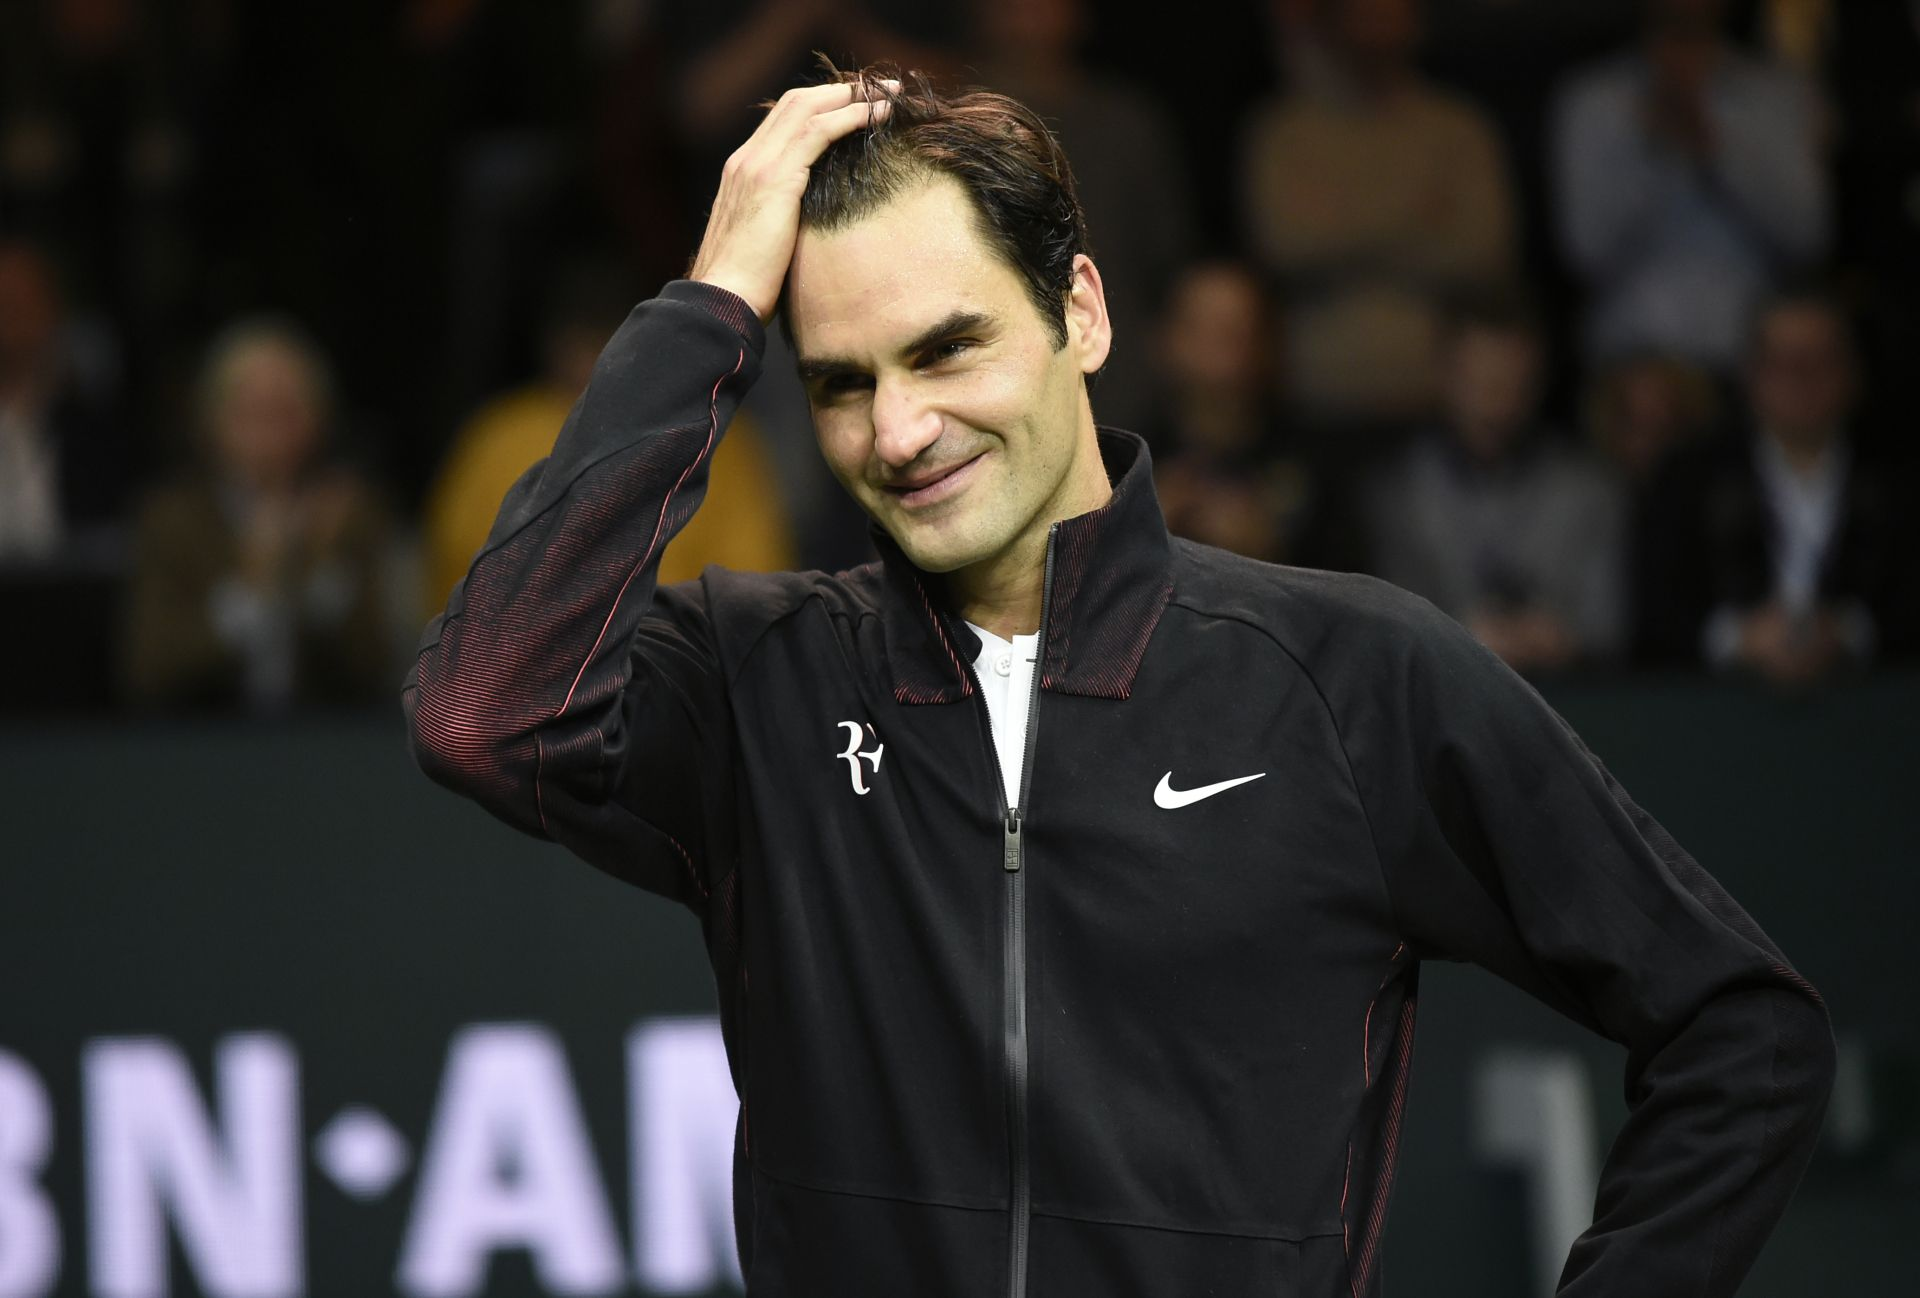 Switzerland's Roger Federer reacts as he speaks to the audience after victory over Netherlands Robin Haase in their quarter-final singles tennis match for the ABN AMRO World Tennis Tournament in Rotterdam on February 16, 2018. Roger Federer became the oldest world number one on February 16, 2018, when the 20-time Grand Slam title winner reached the semi-finals of the Rotterdam Open. The 36-year-old Swiss overcame an early setback to beat Robin Haase of the Netherlands 4-6, 6-1, 6-1 and will replace old riv